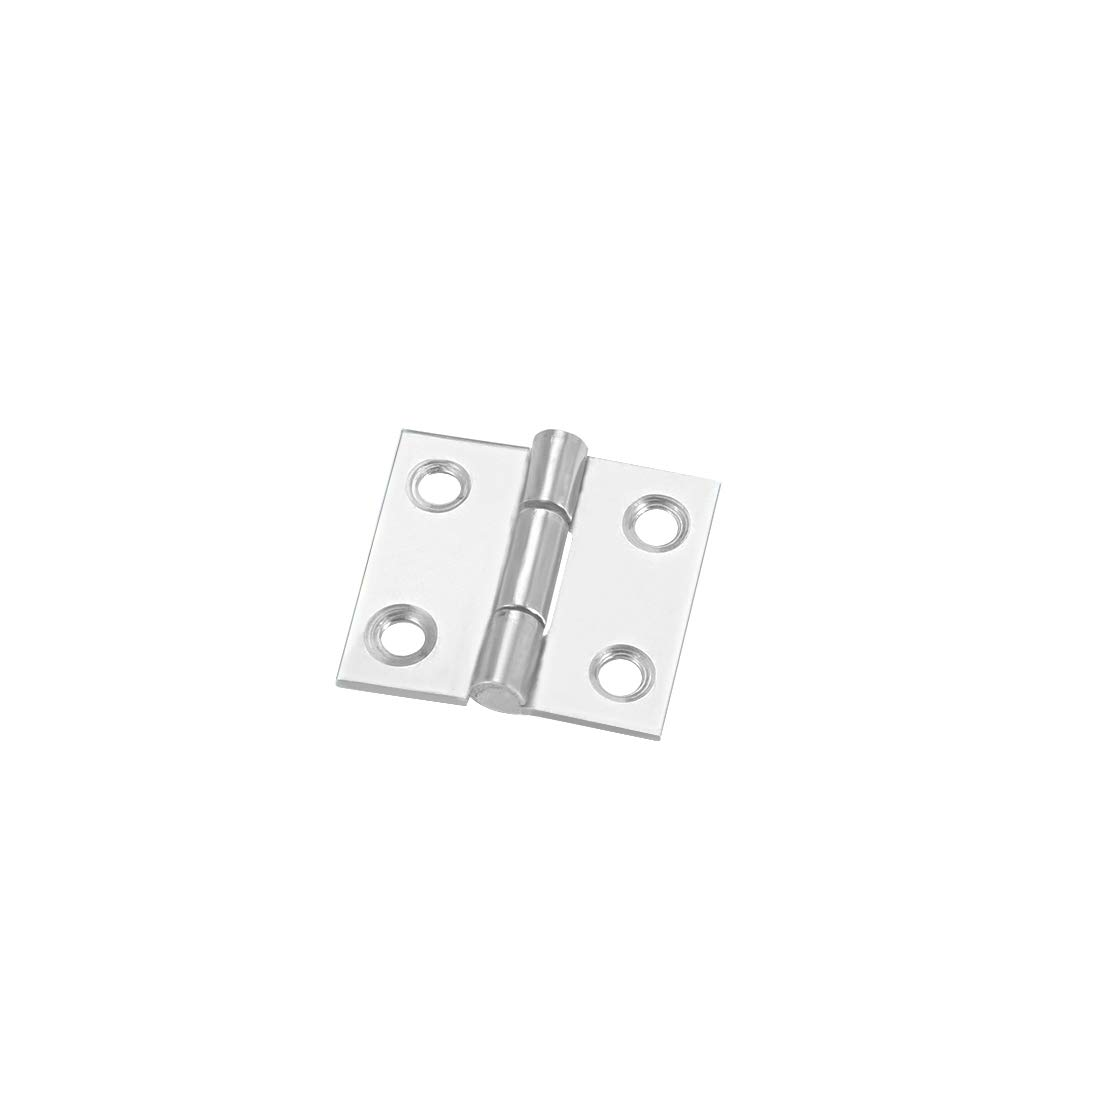 uxcell 1.06 Hinge Silver Door Cabinet Hinges Fittings Brushed Chrome Plain 12pcs